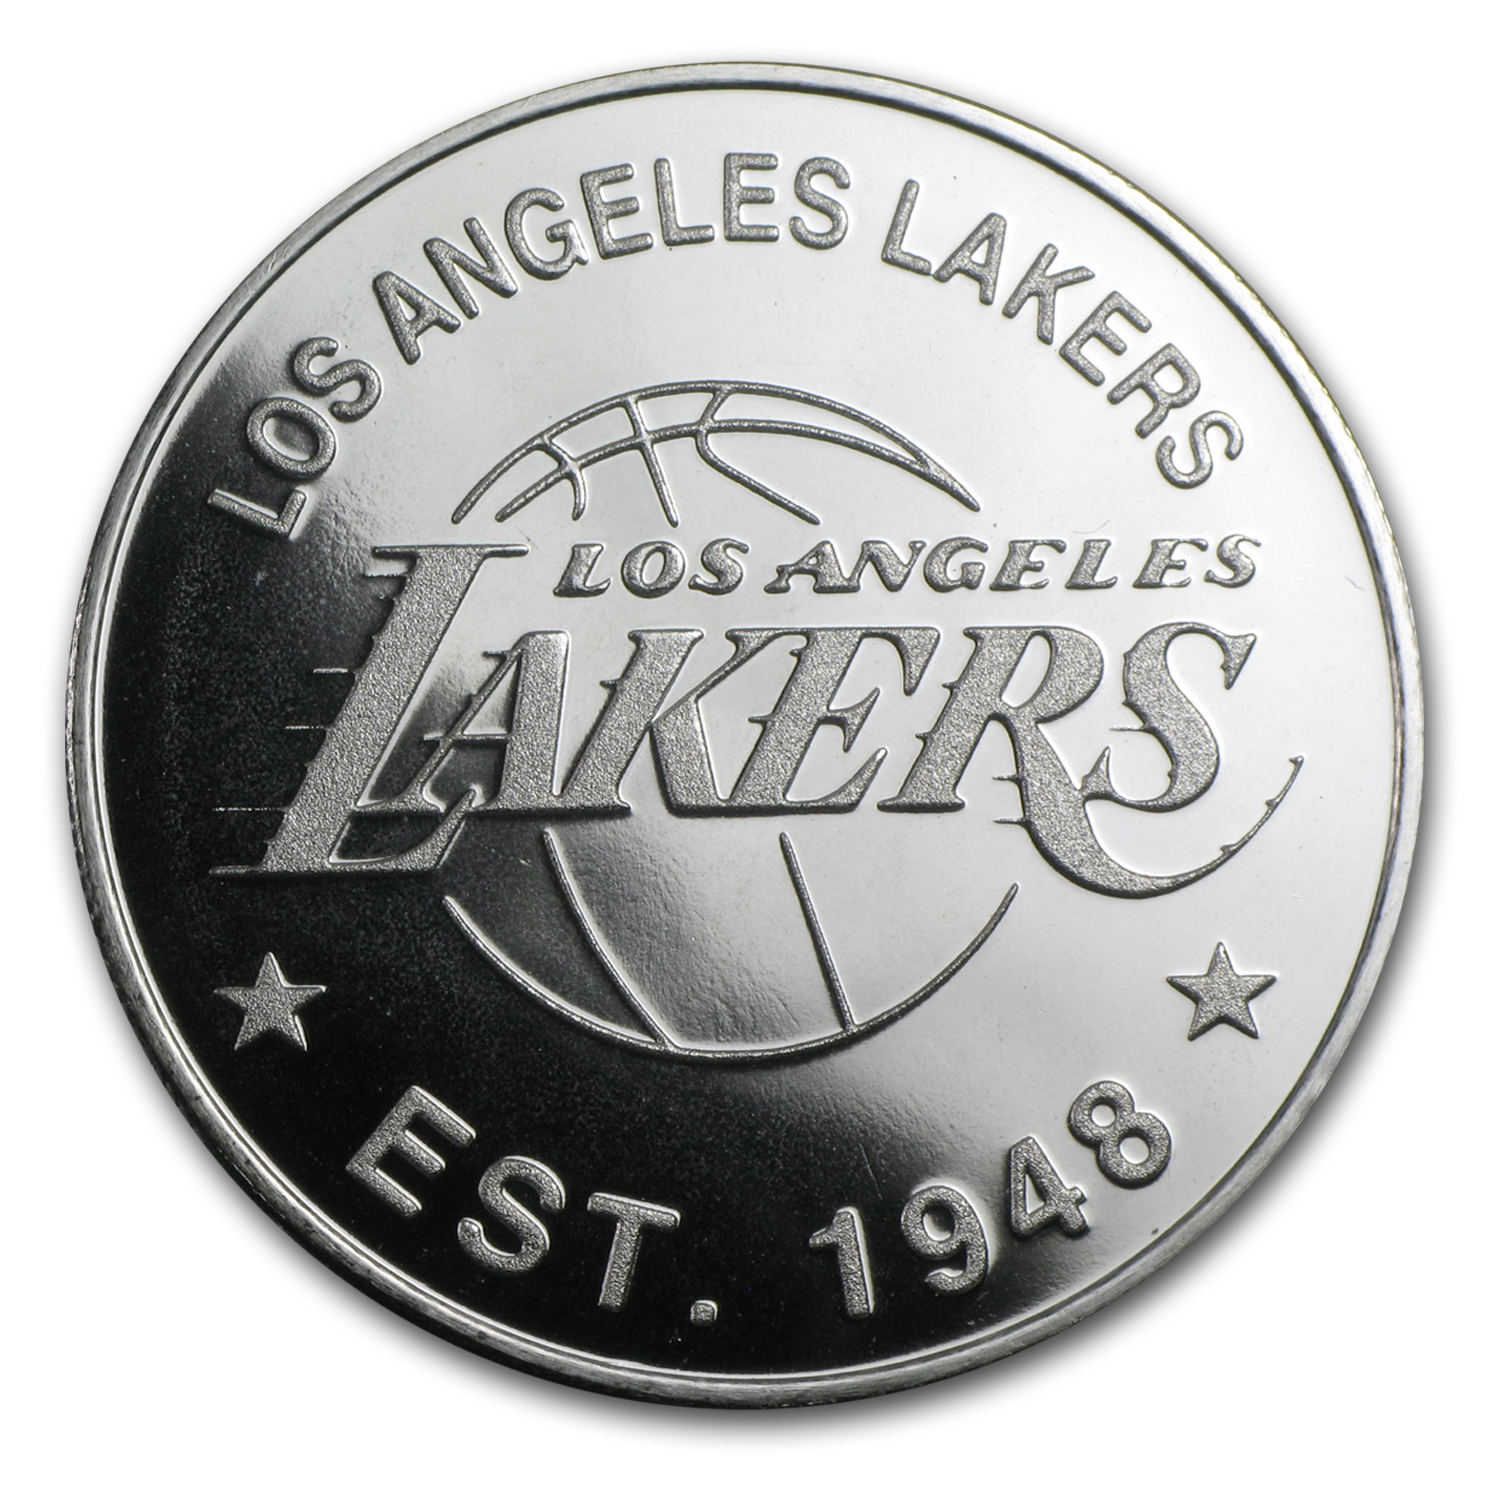 1 oz Silver Round - Los Angeles Lakers